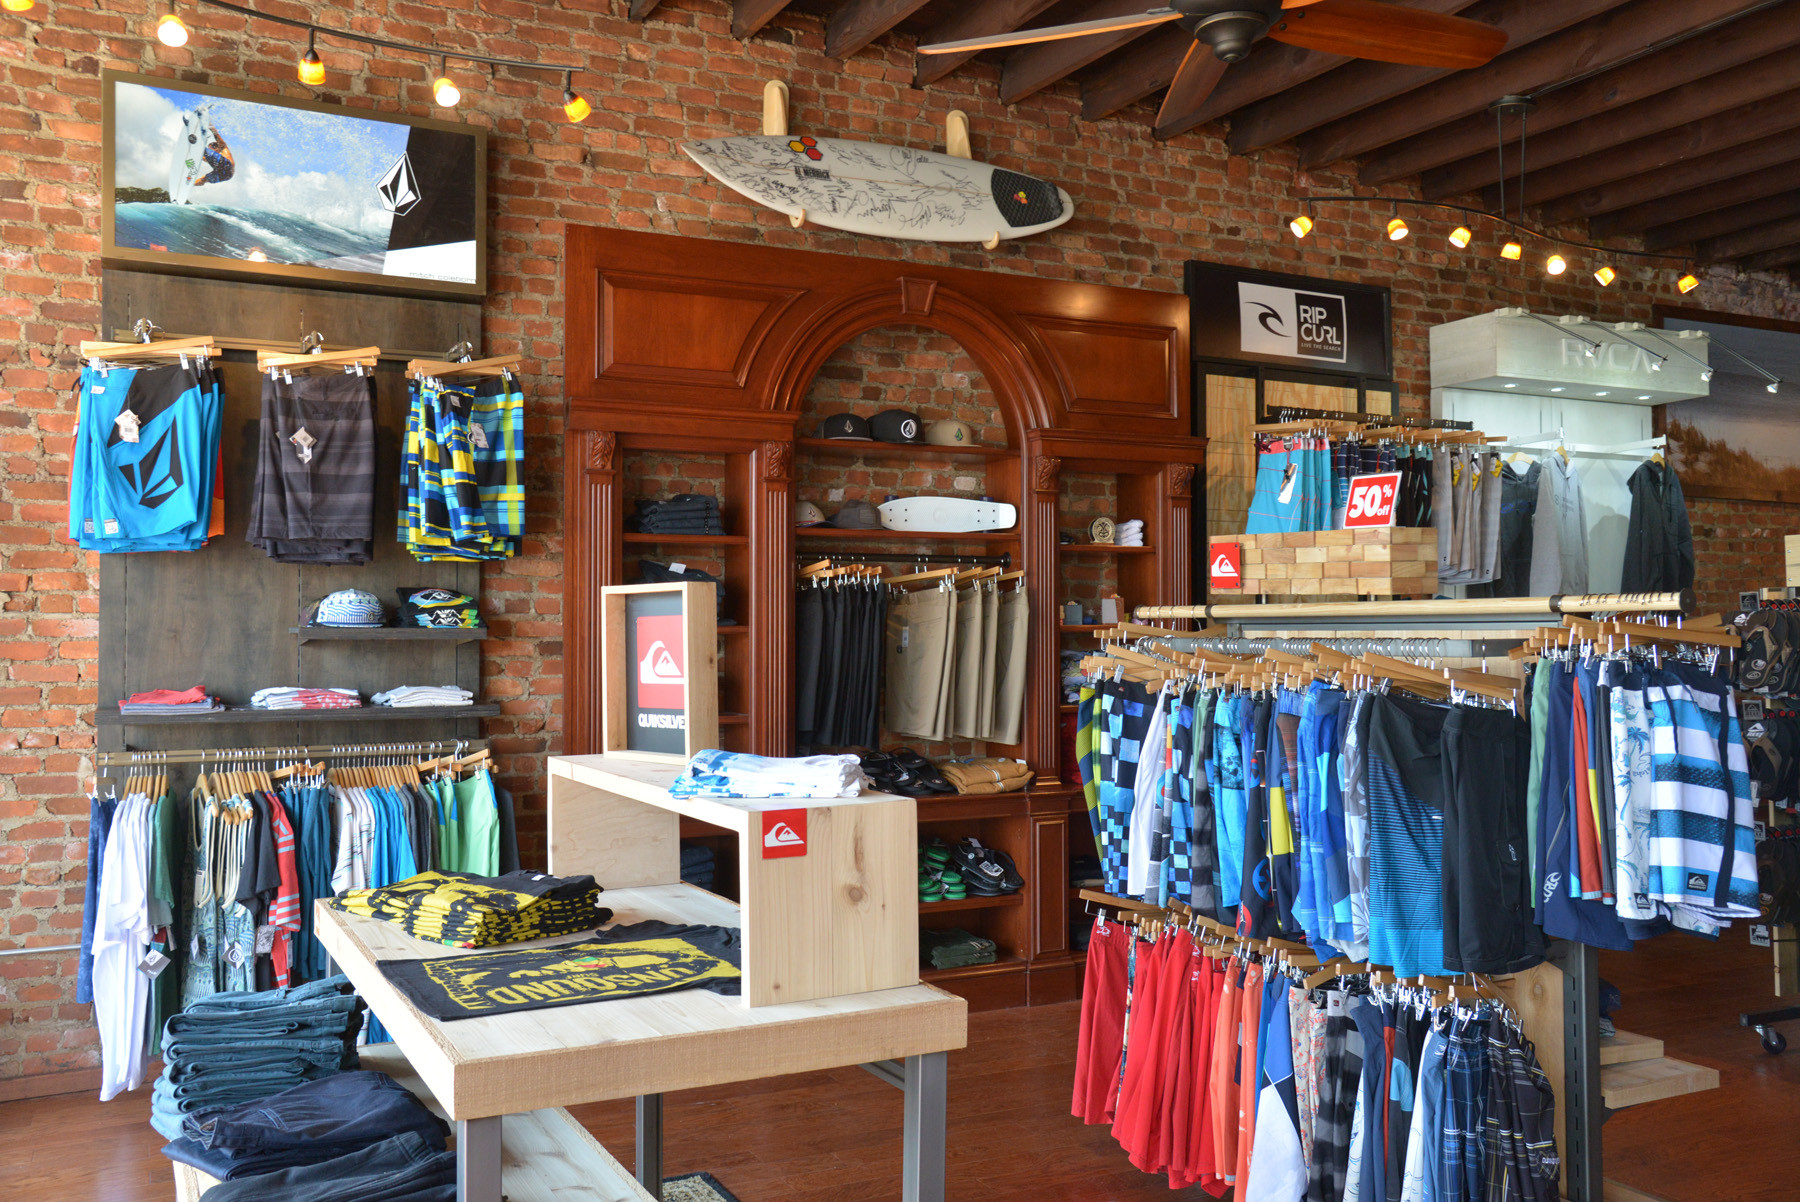 The reopened store has been redesigned and boasts a more modern, spacious look.